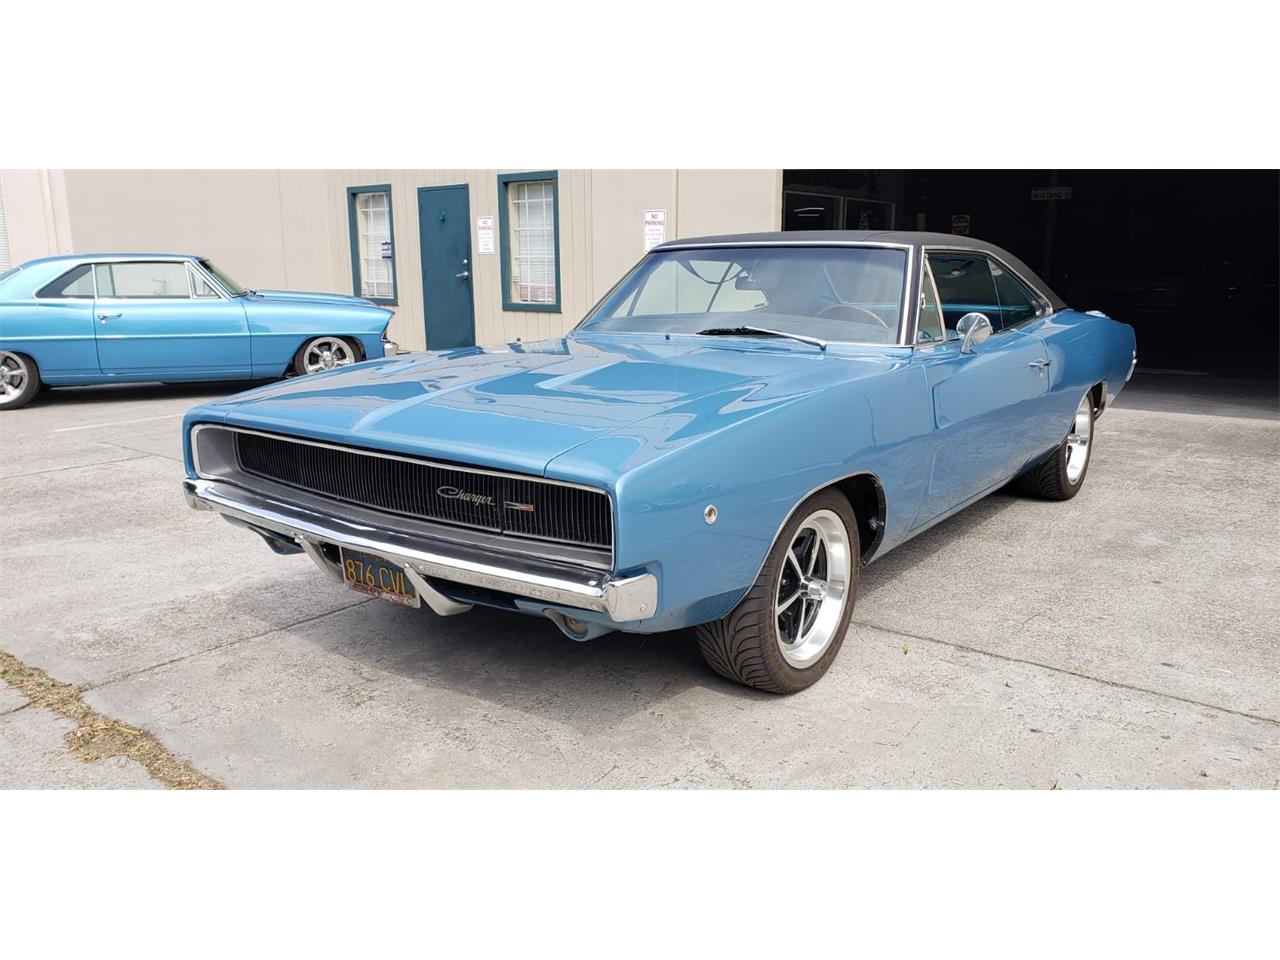 for sale 1968 dodge charger in stockton, california cars - stockton, ca at geebo